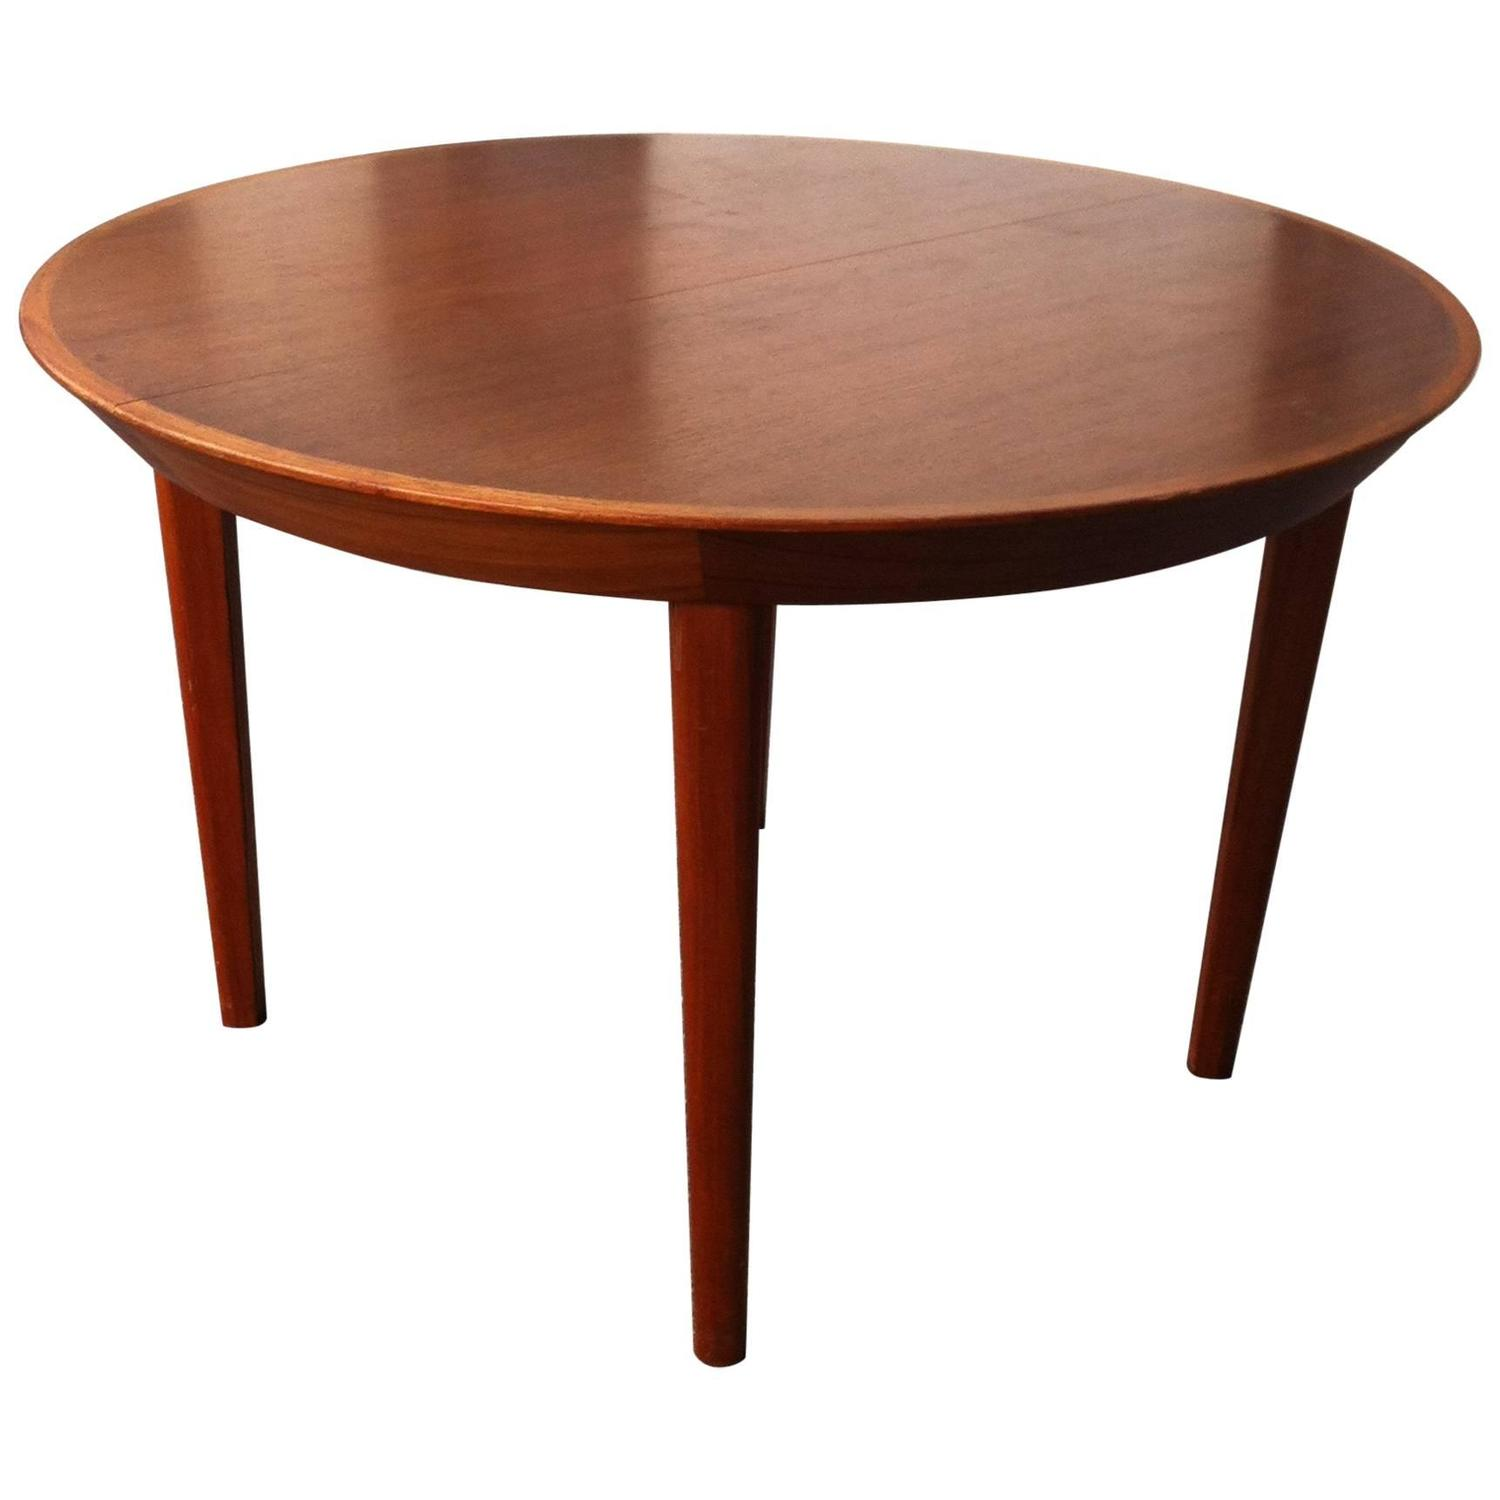 exceptional round extentional danish 1960s dining table in teak by